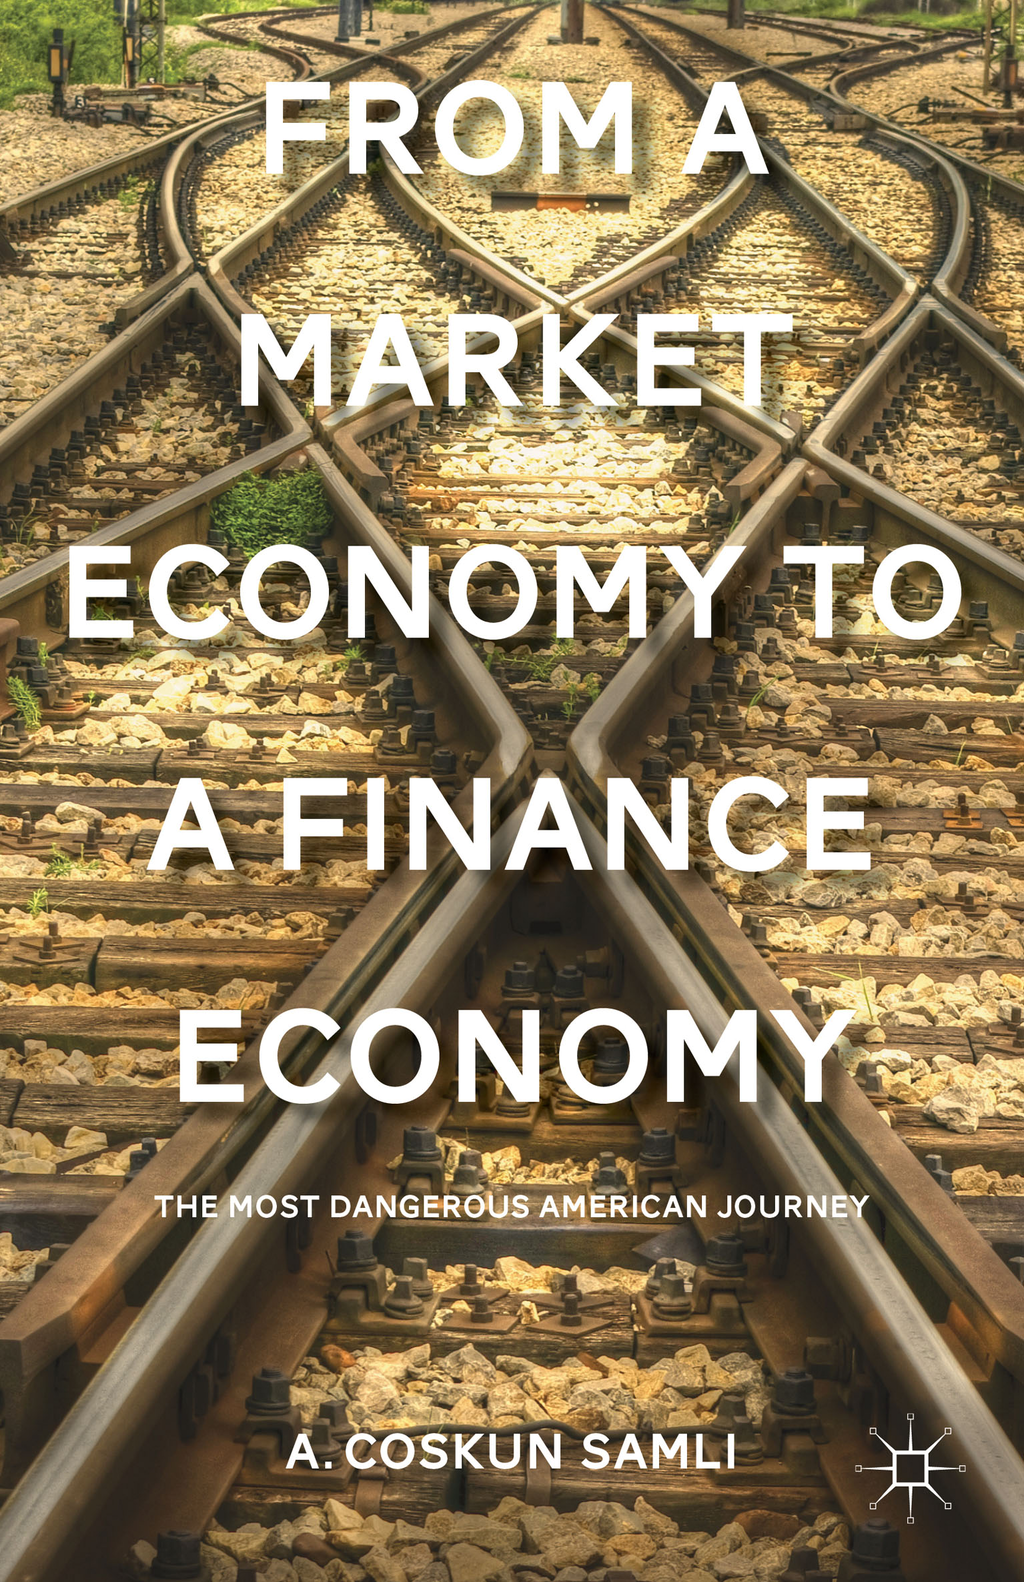 From a Market Economy to a Finance Economy The Most Dangerous American Journey